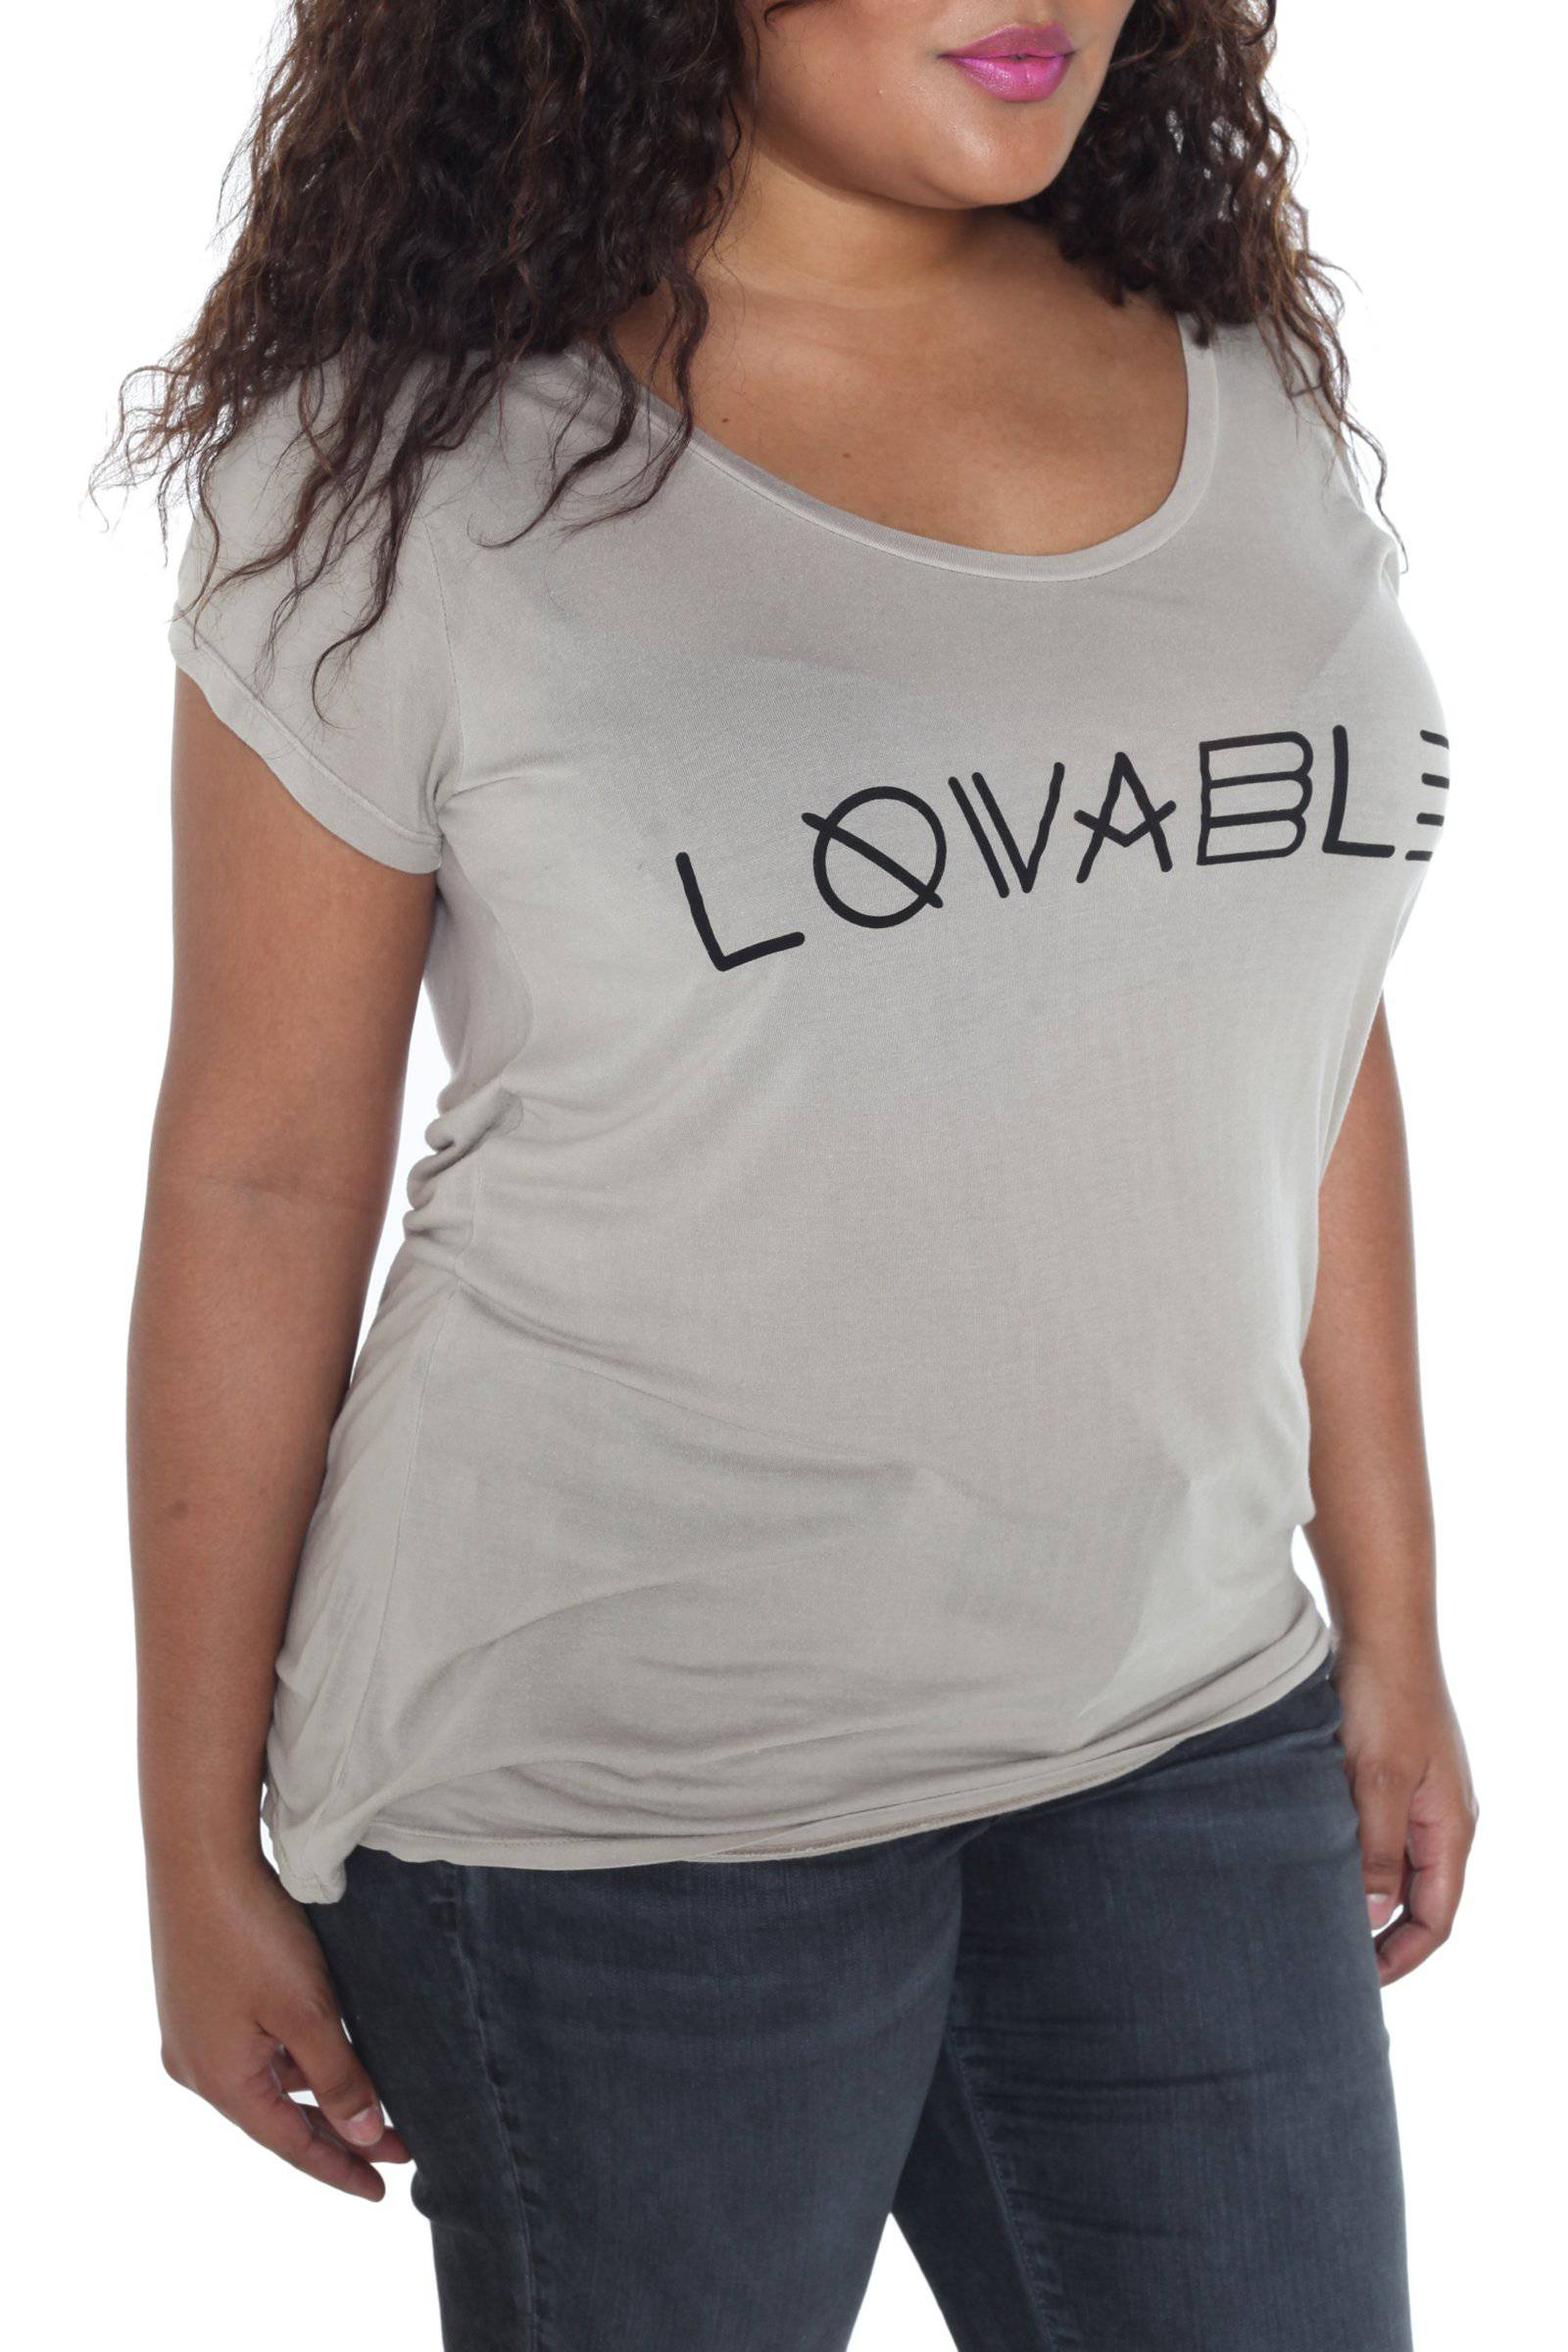 Scoop Neck Tee - LOVABLE